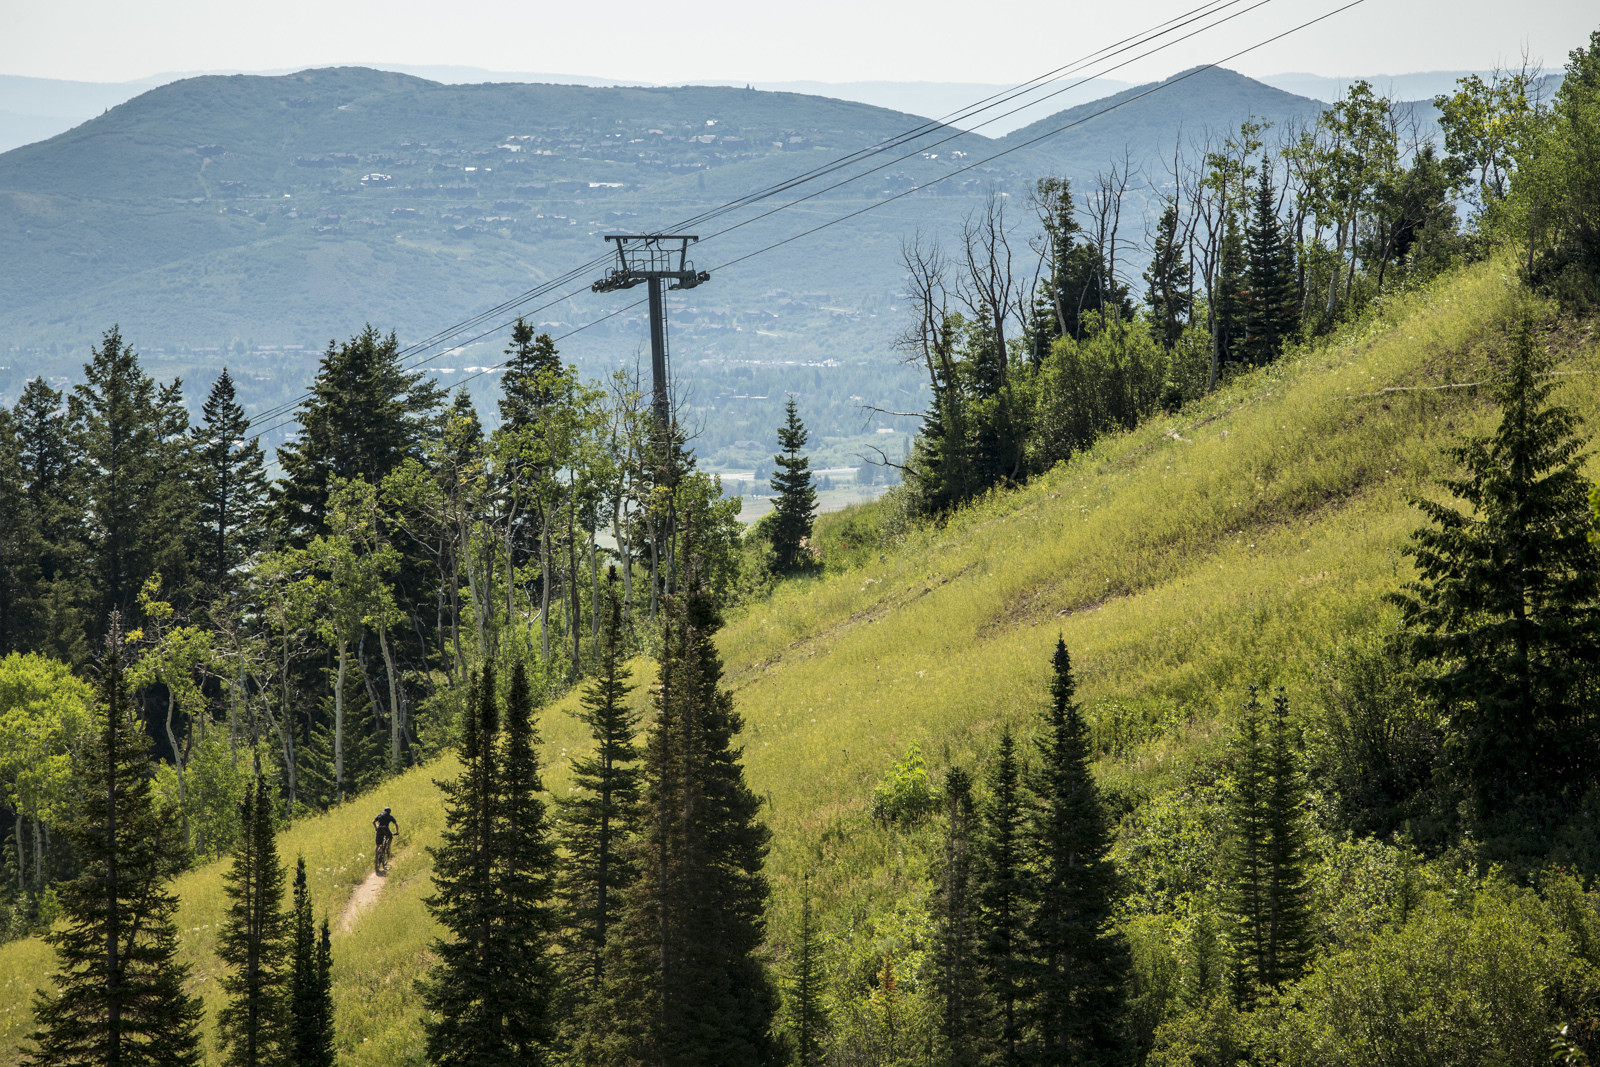 Race Report, Bell Enduro Cup at Canyons Resort - Race Report, Photos and Video: Bell Enduro Cup at Canyons Resort - Mountain Biking Pictures - Vital MTB